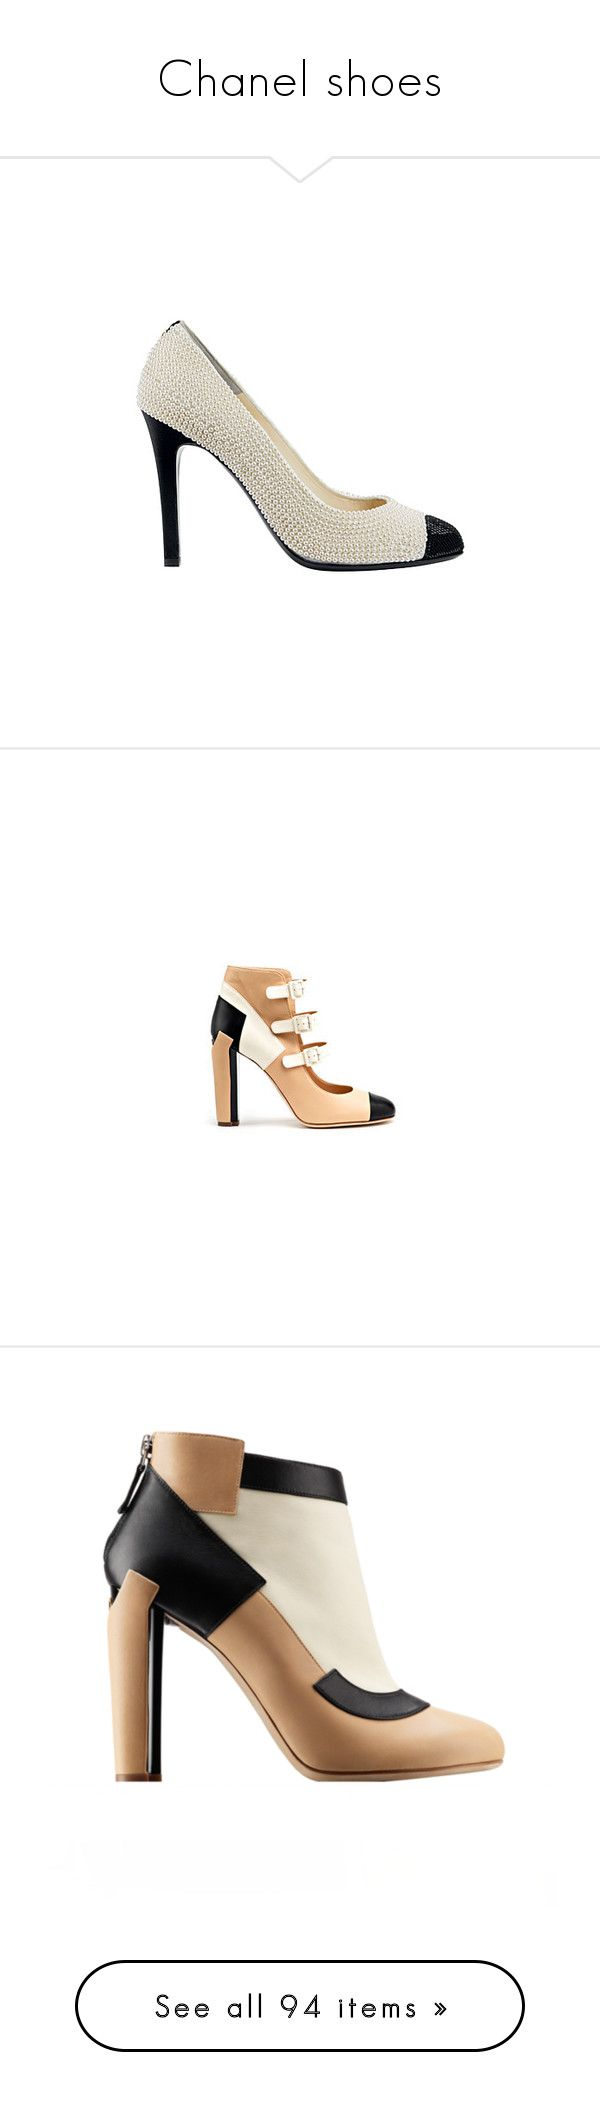 """Chanel shoes"" by z777 ❤ liked on Polyvore featuring shoes, pumps, heels, chanel, sapatos, chanel pumps, chanel shoes, heel pump, chanel footwear and footwear"